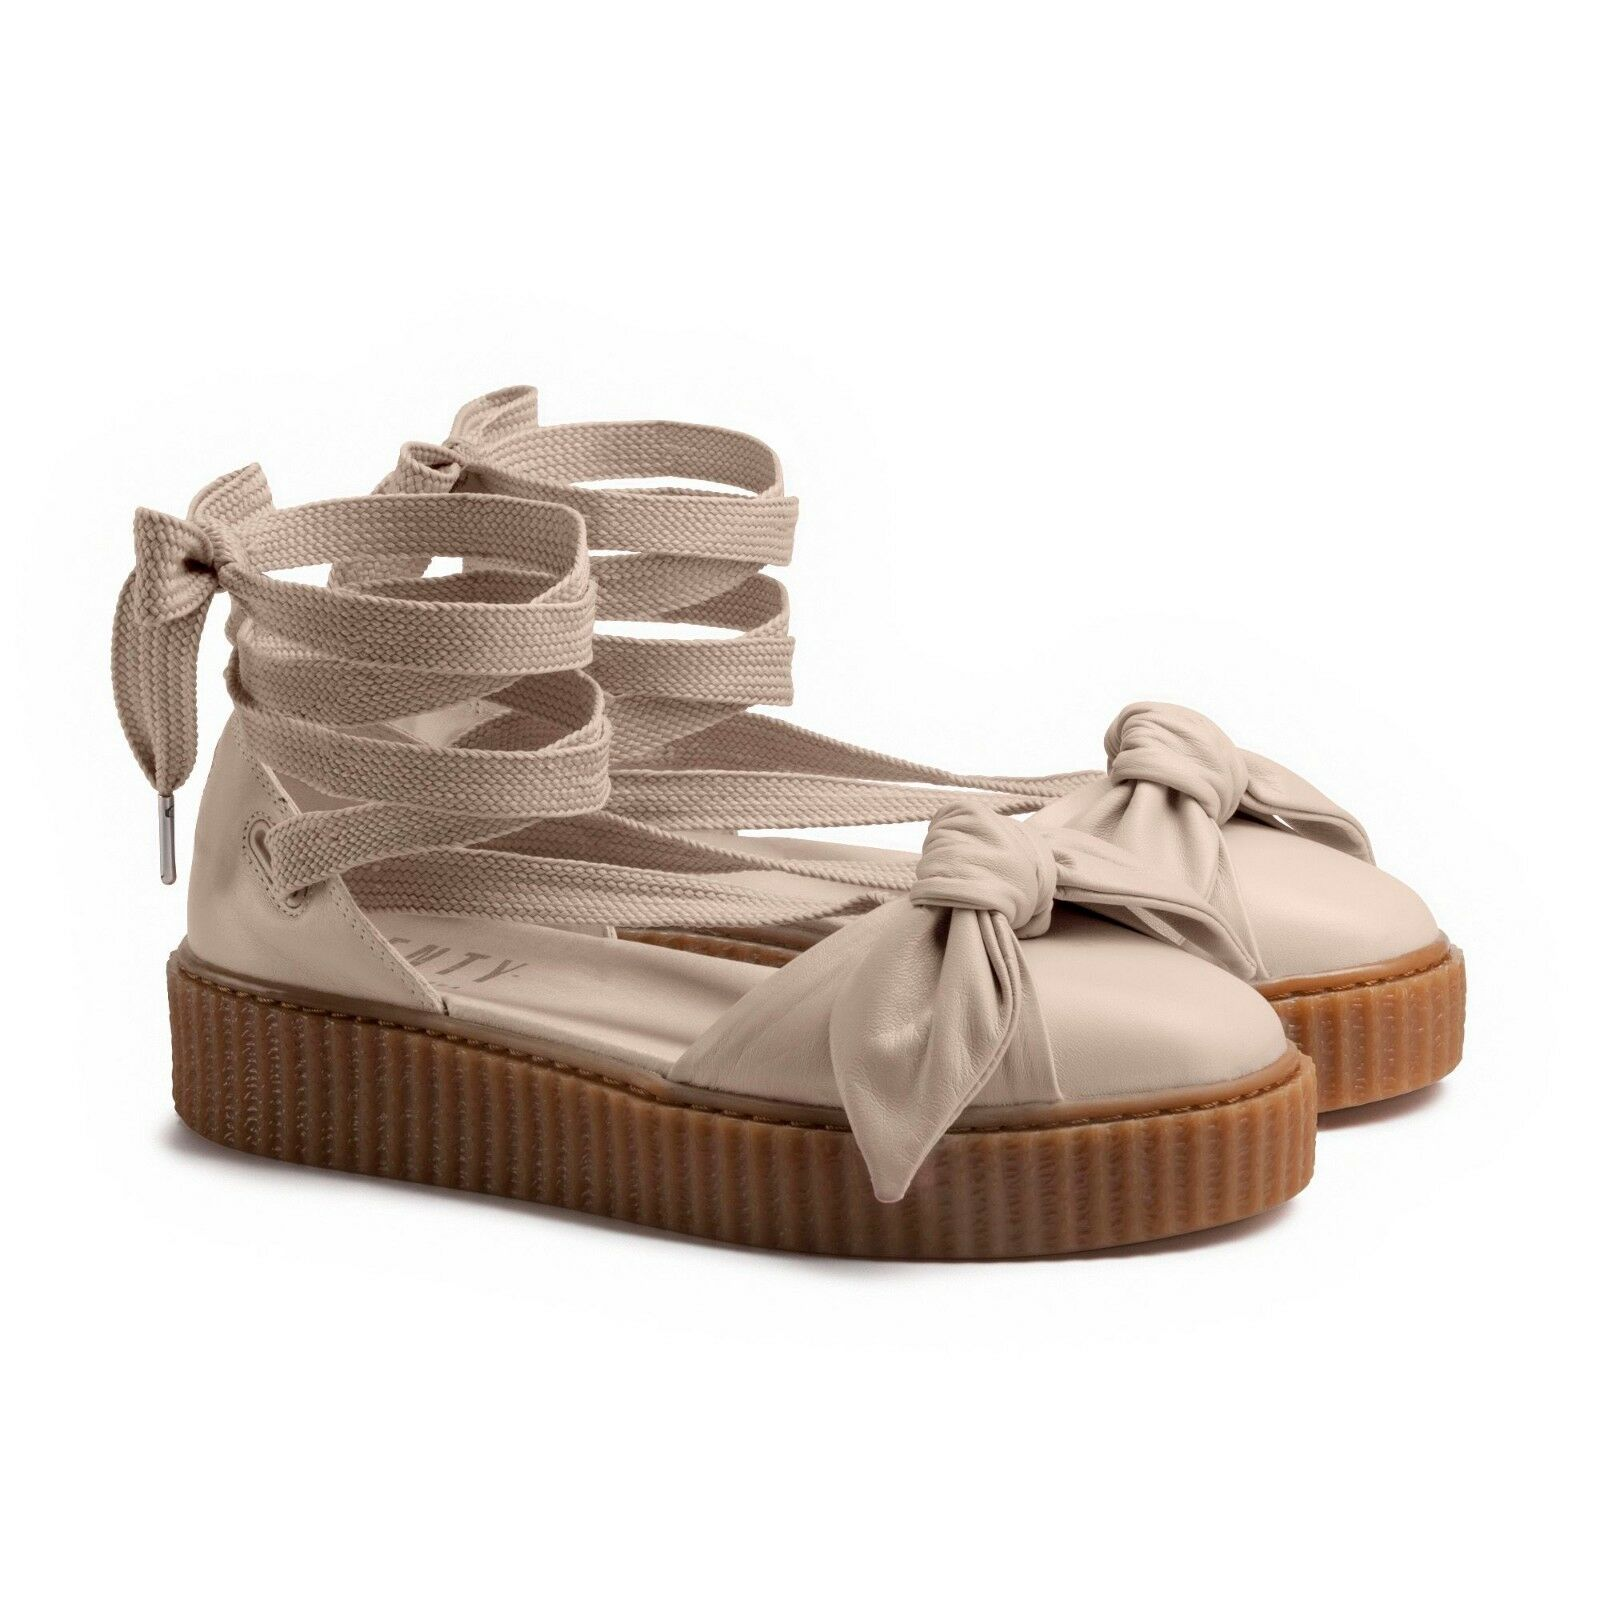 PUMA FENTY Rihanna Beige Oatmeal Lace Up Bow Creeper Sandals Sandals Sandals Espadrille Sz 7 New c0726e